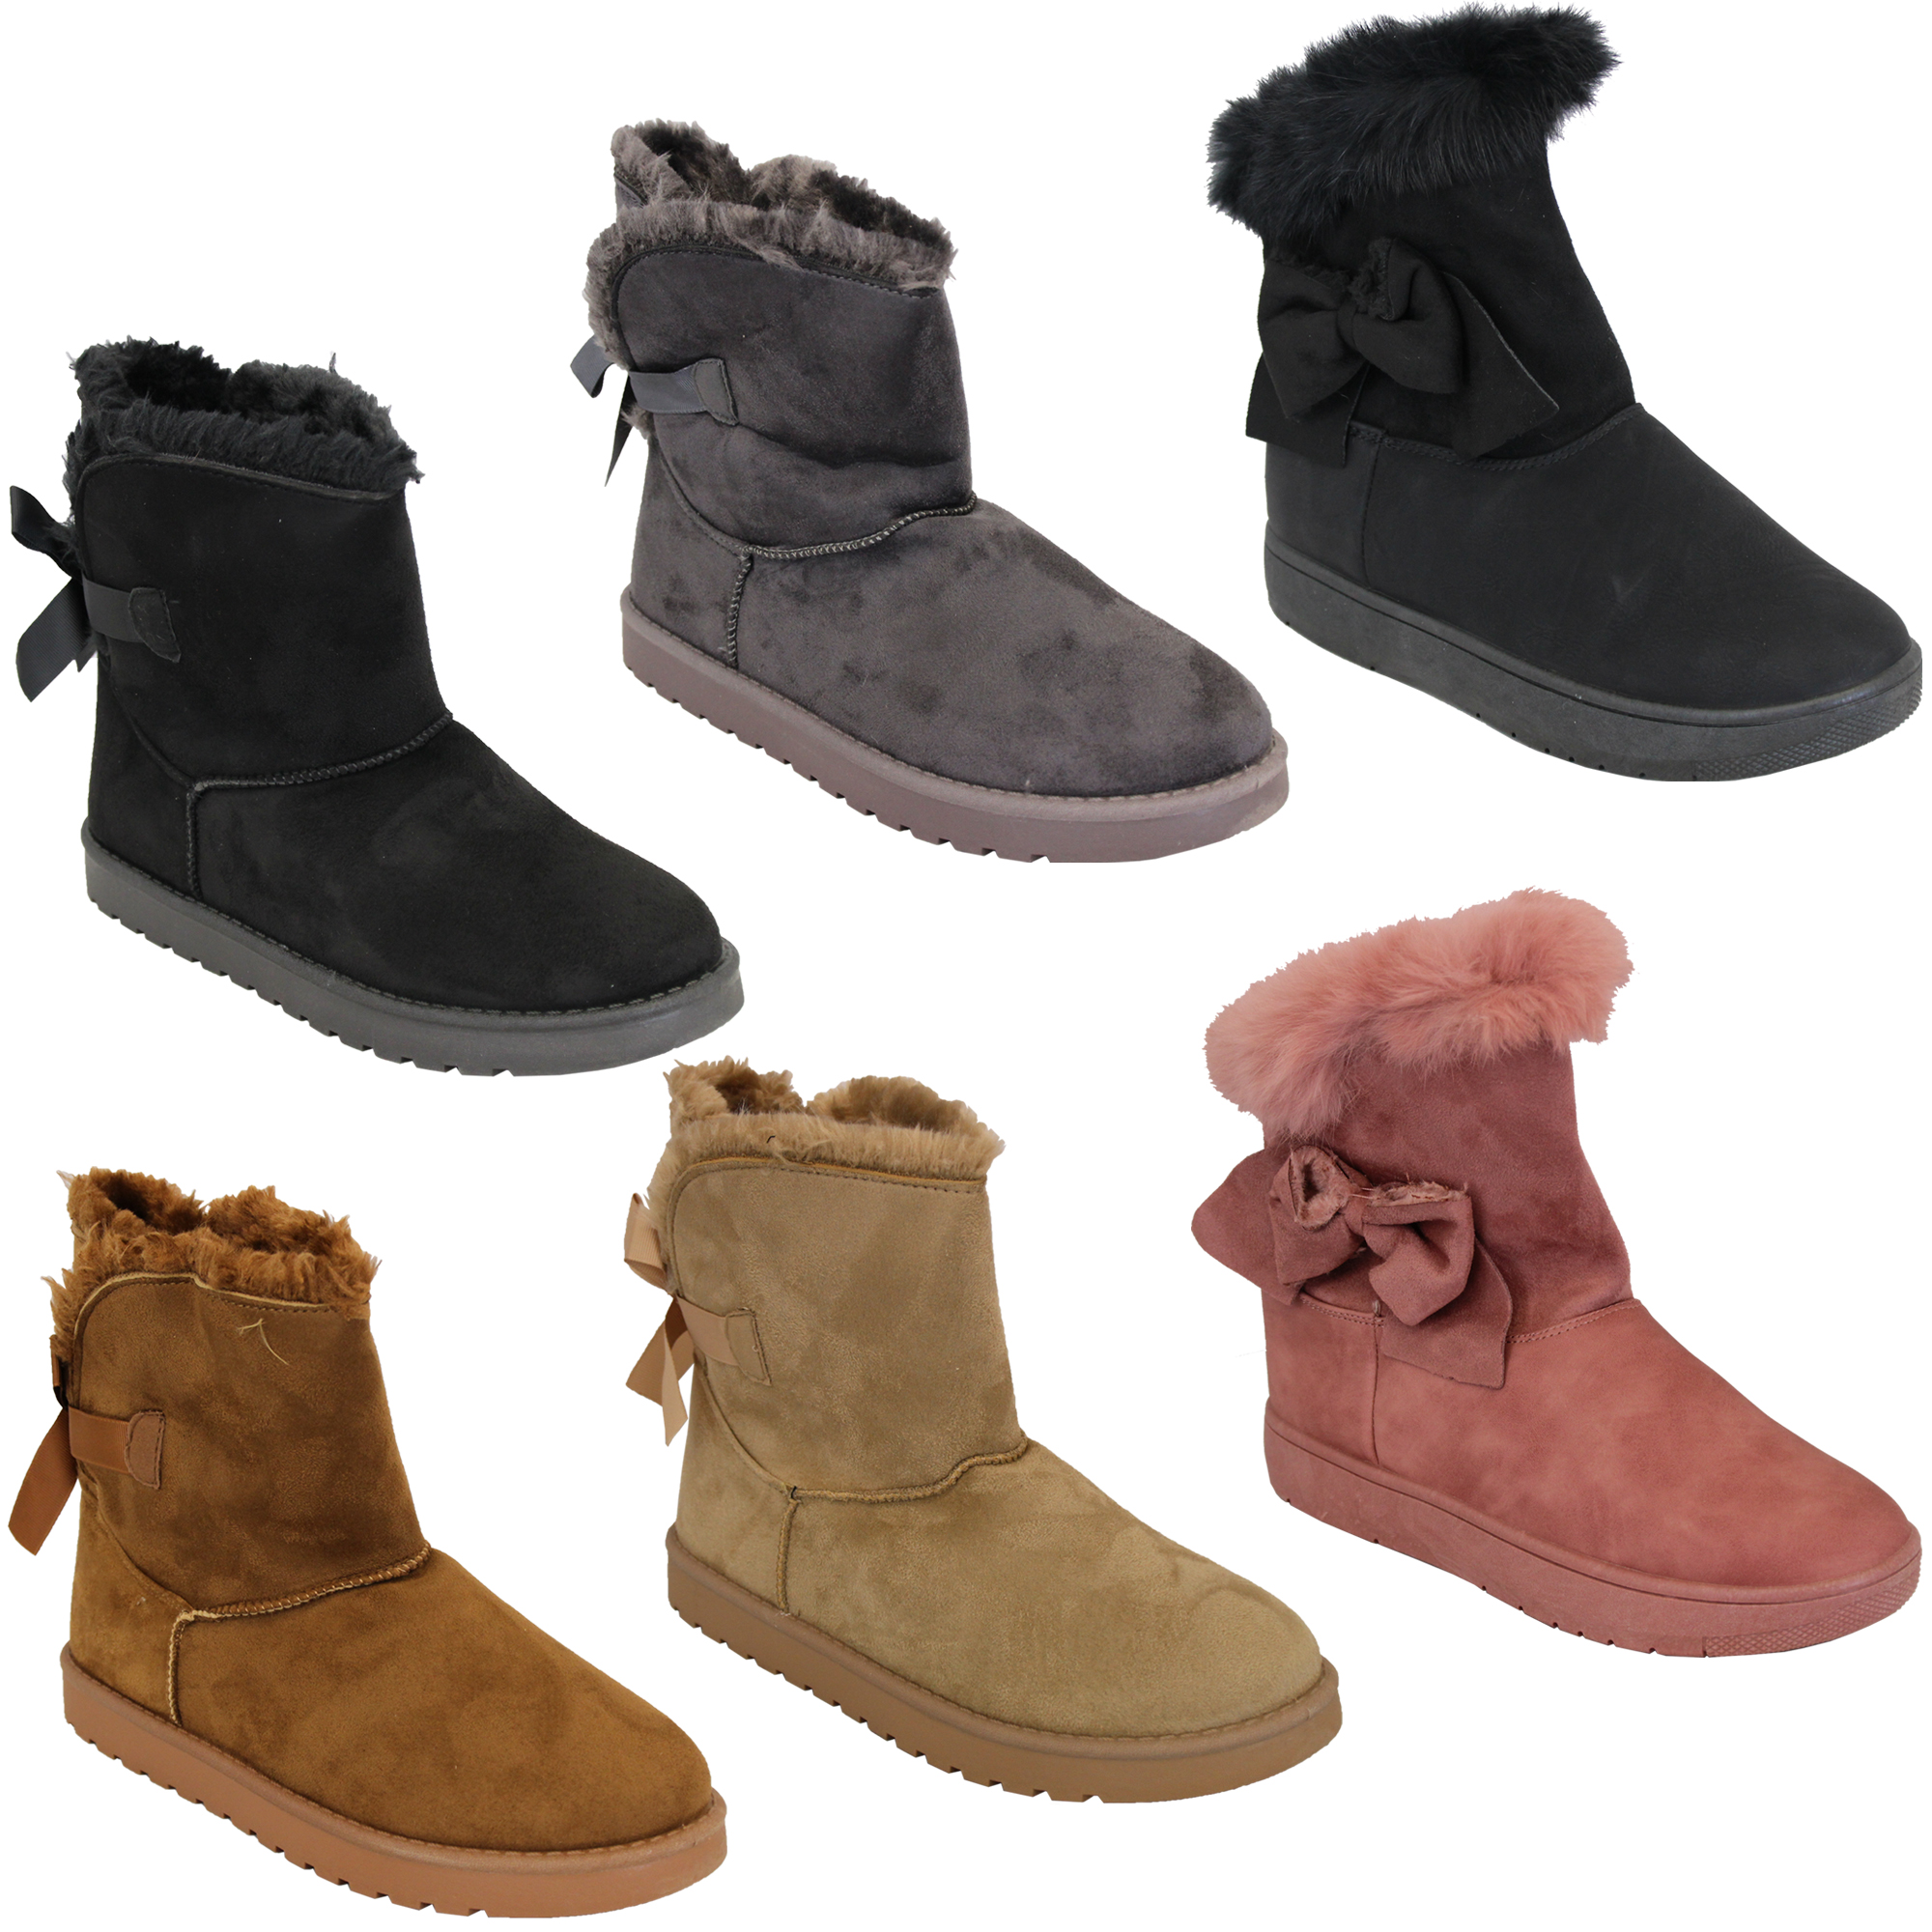 Details about Ladies Snow Ankle Boots Womens Suede Fur Lined Snuggle Shoes  Bow Winter New